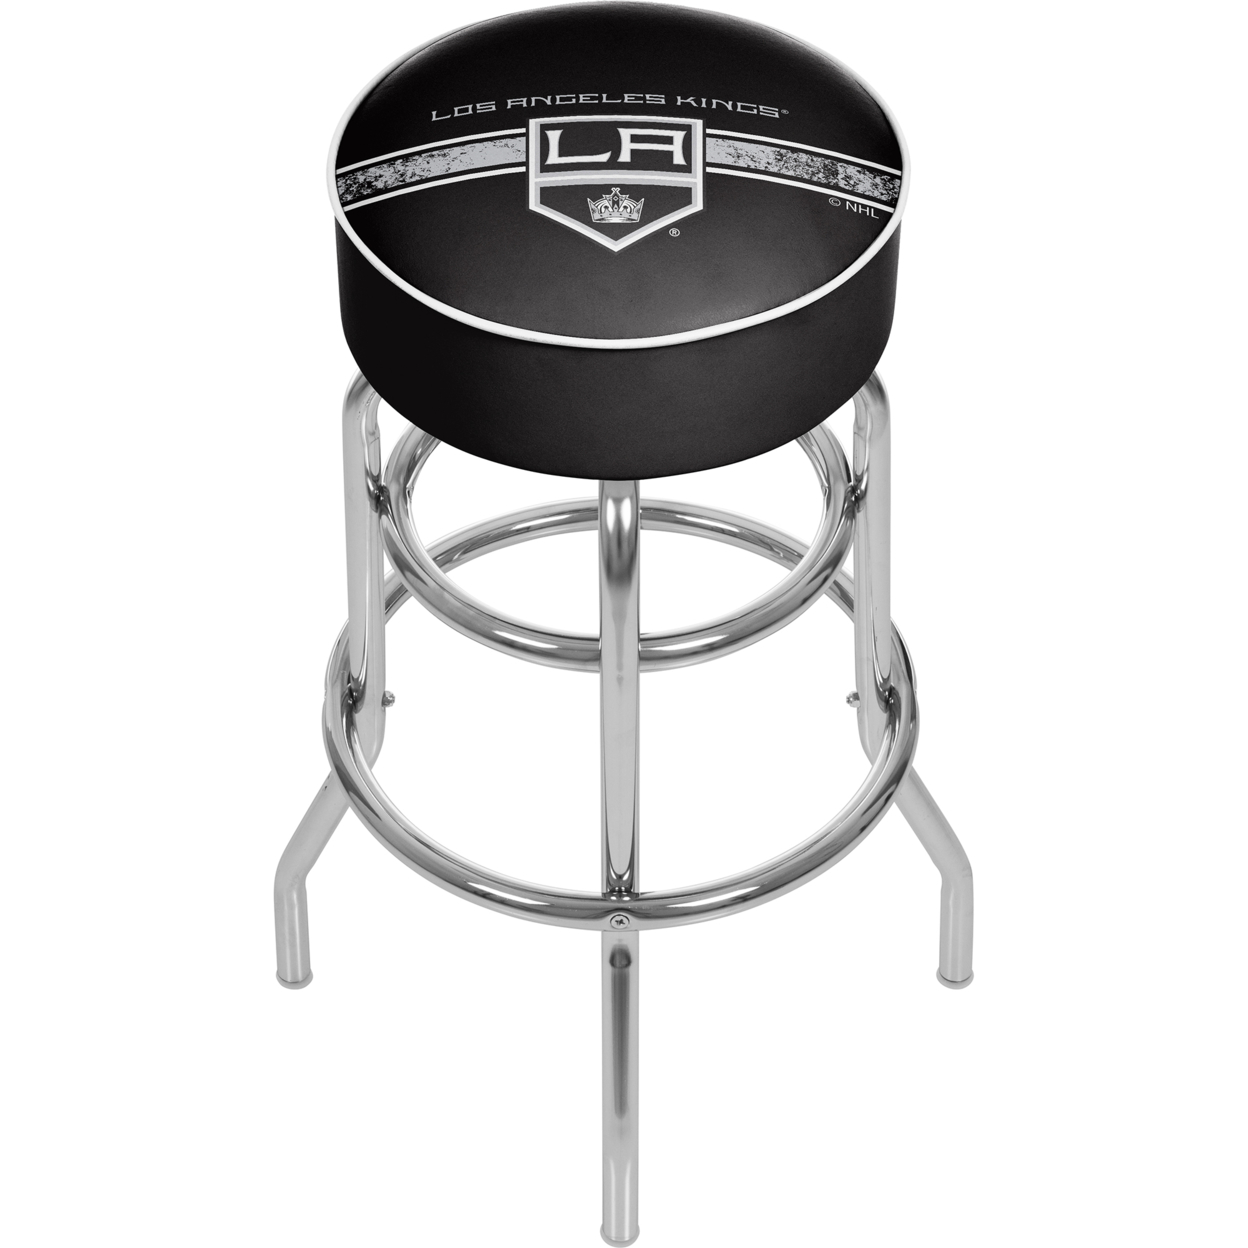 NHL Chrome Padded Swivel Bar Stool 30 Inches High - Los Angeles Kings худи print bar los angeles